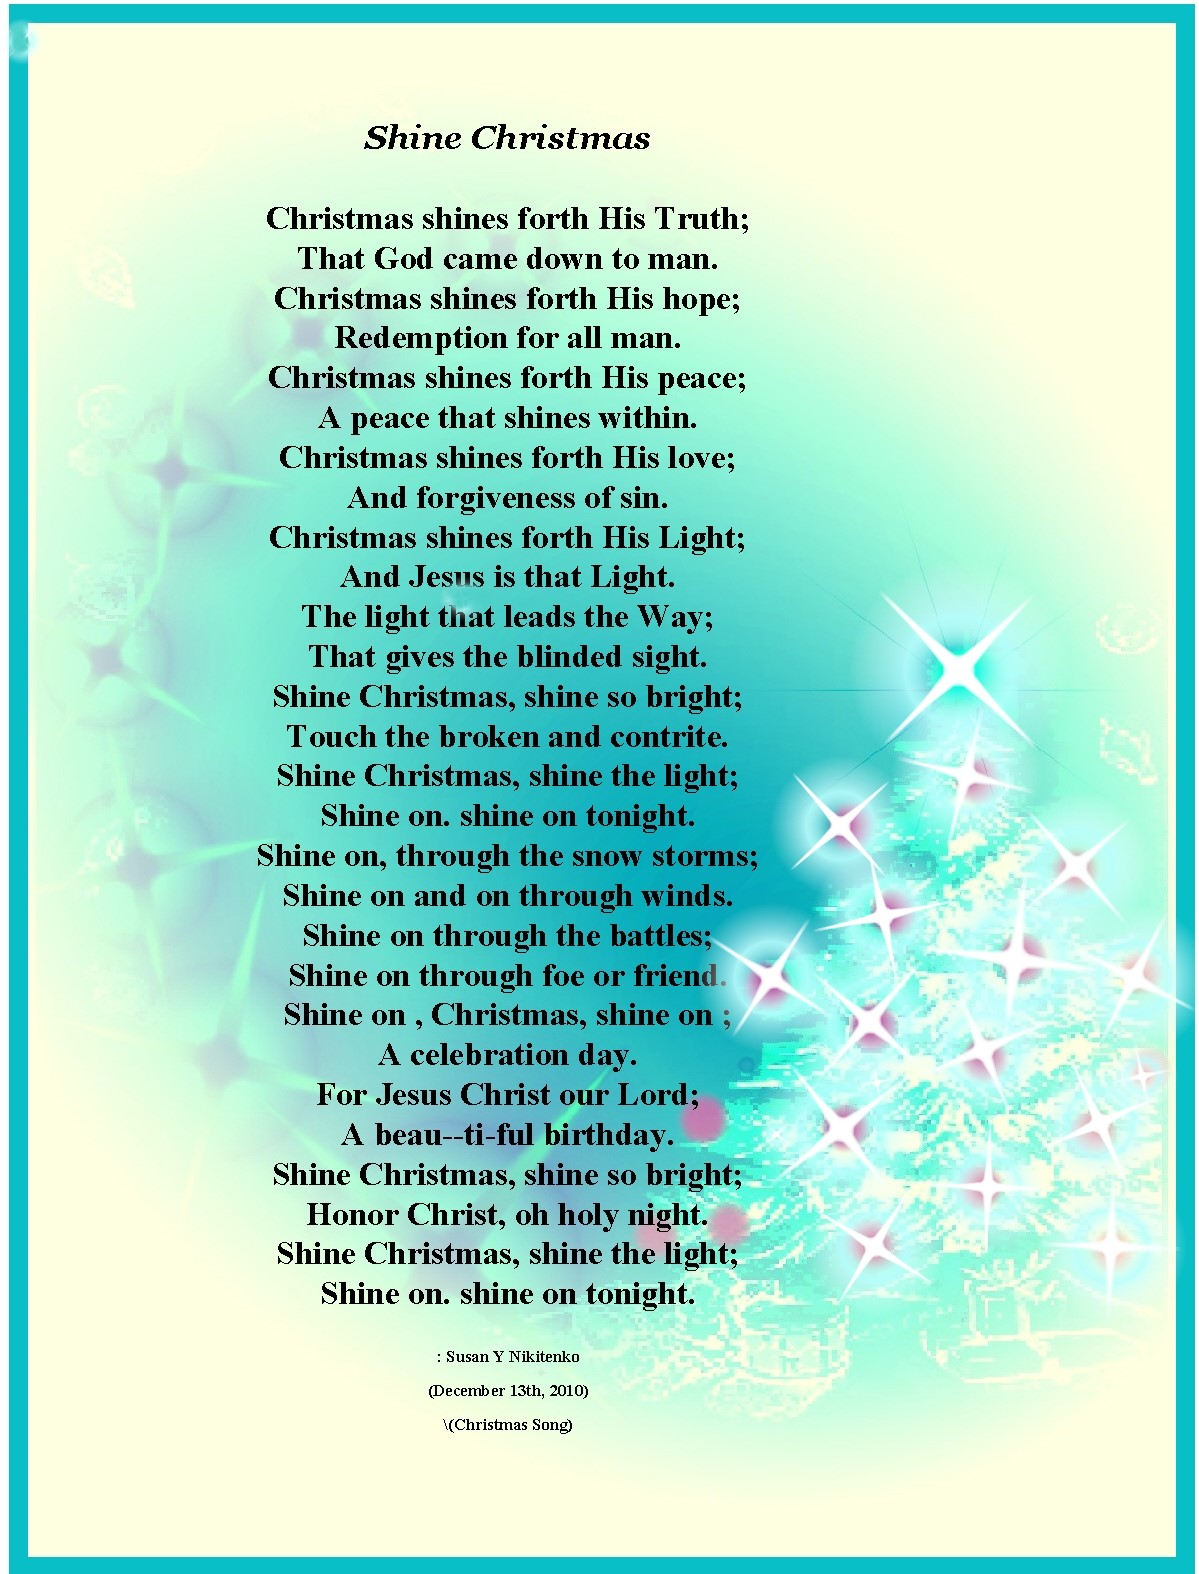 Christian Images In My Treasure Box: Christmas Poem Posters - Updated ...